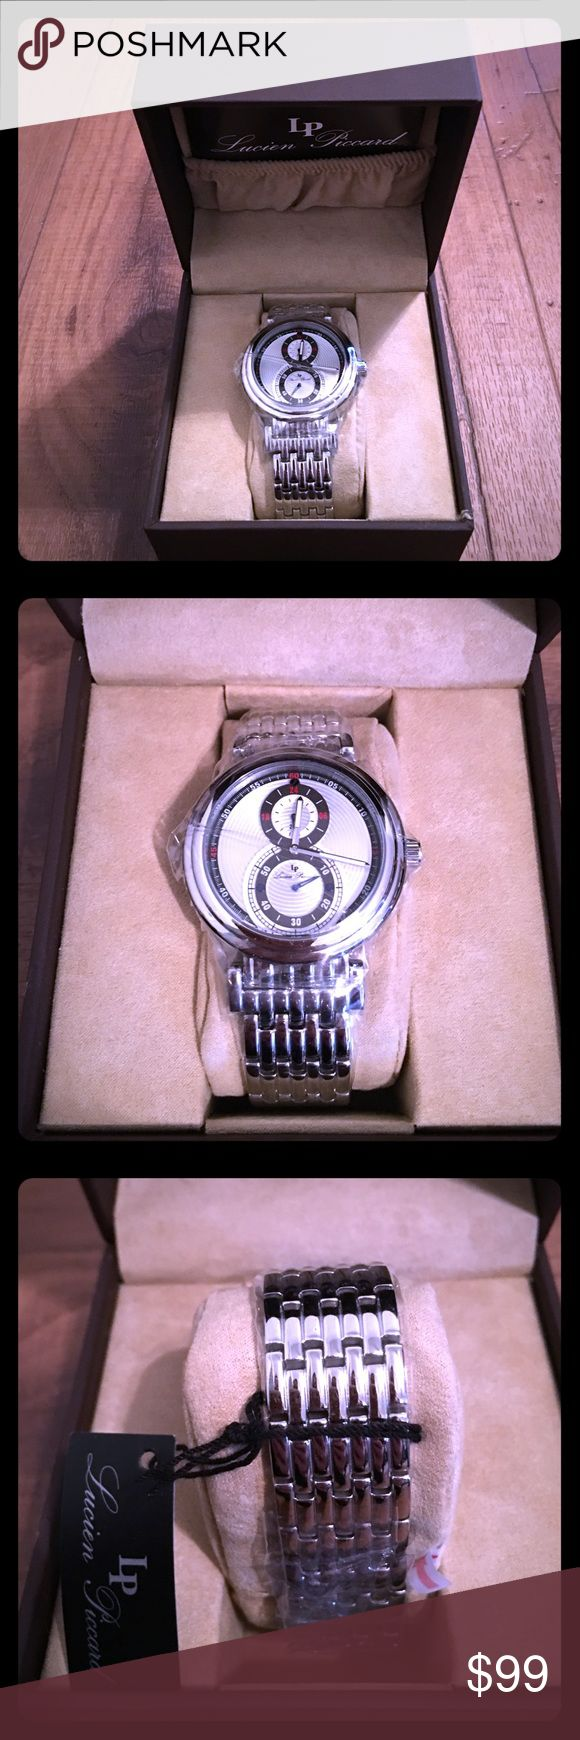 Men's BNWT Lucien Piccard watch Men's BNWT Lucien Piccard watch. In original packaging, plastic and box. For the men out there or amazing gift for the hubby or bf Lucien Piccard Accessories Watches